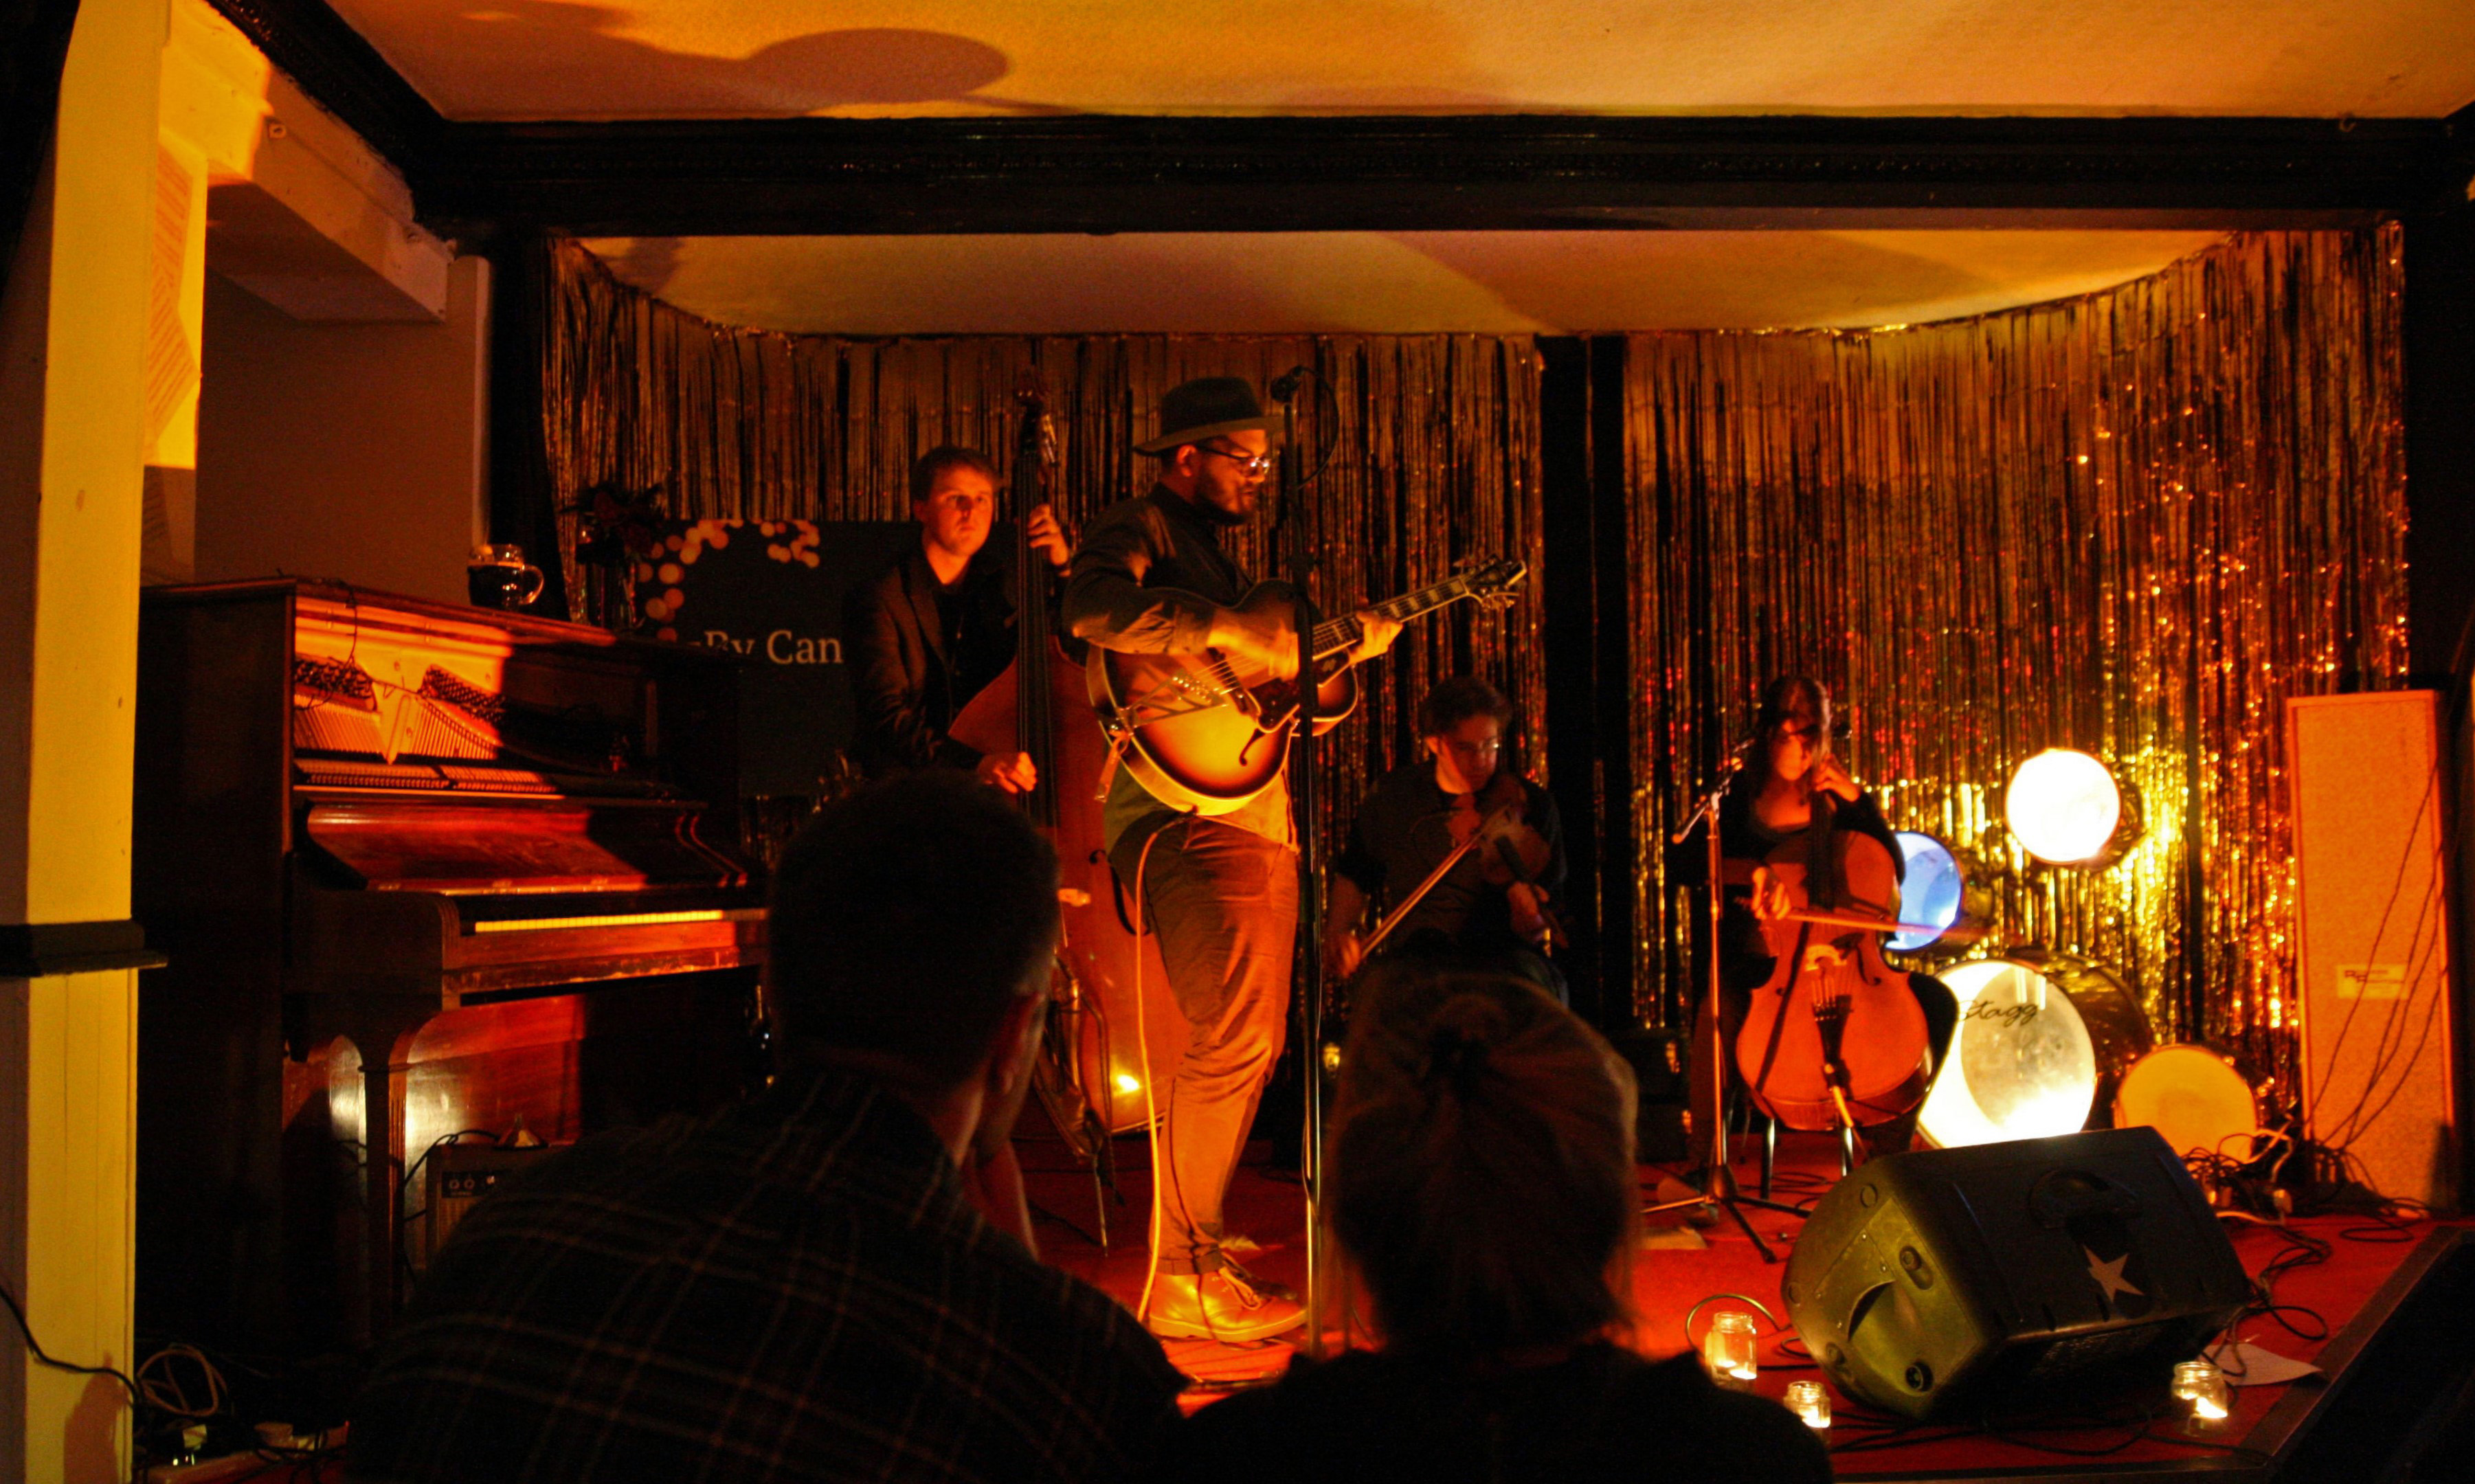 Zak Ford/Ben Maggs – The Fleeting Arms, York, 14th December 2015